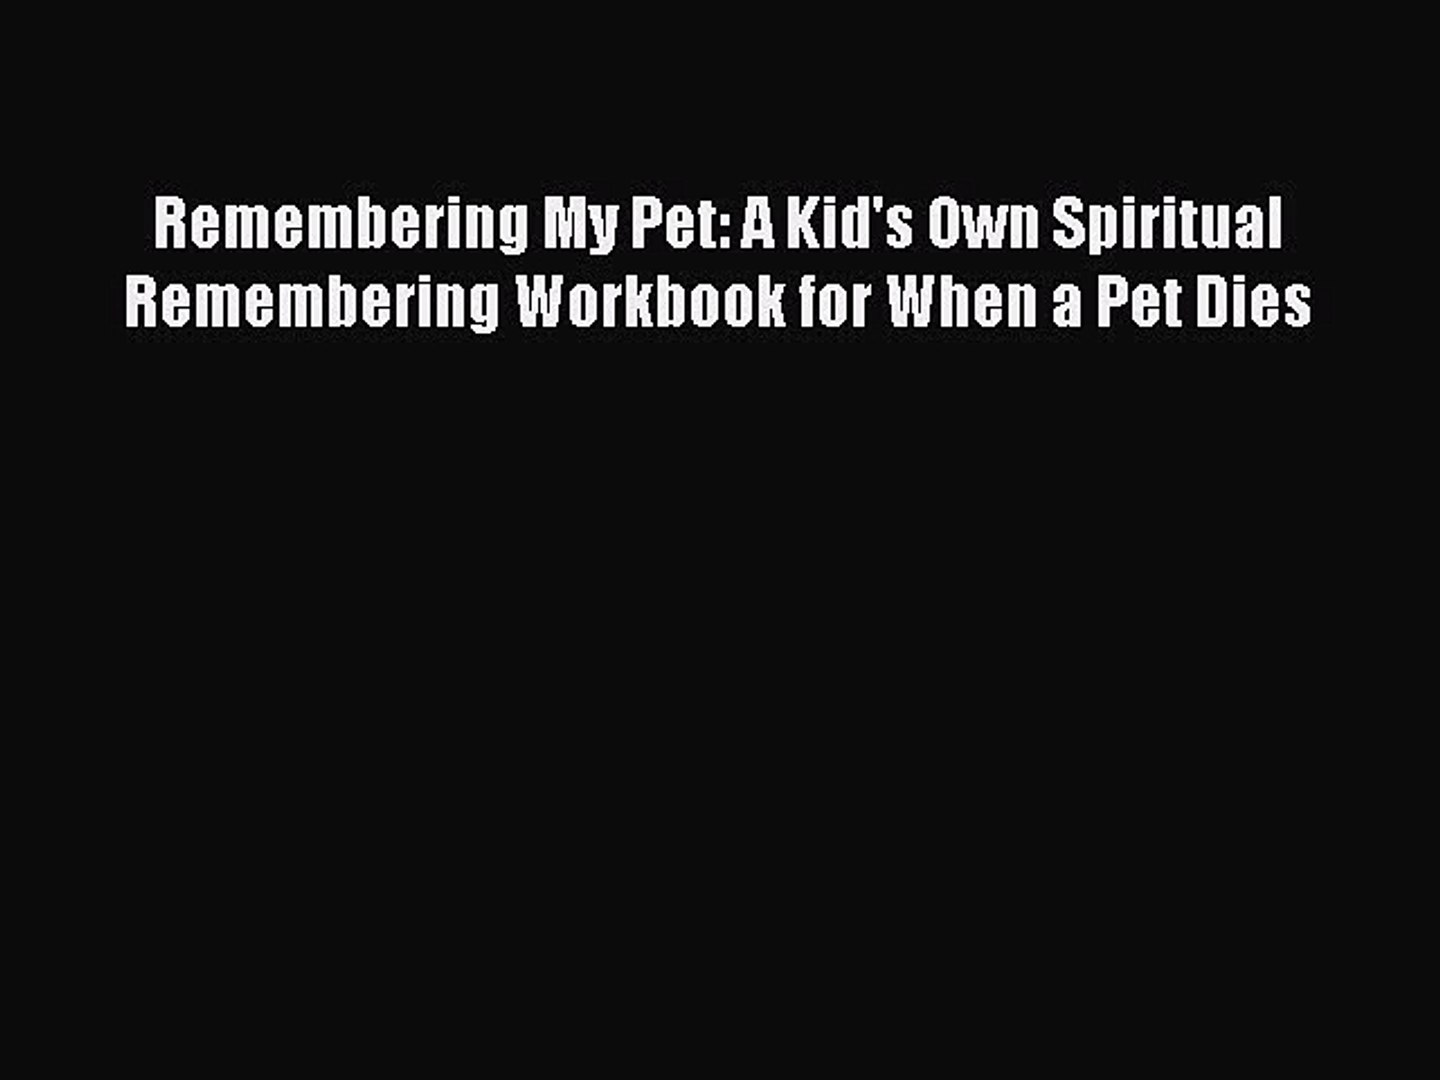 [PDF] Remembering My Pet: A Kid's Own Spiritual Remembering Workbook for When a Pet Dies PDF